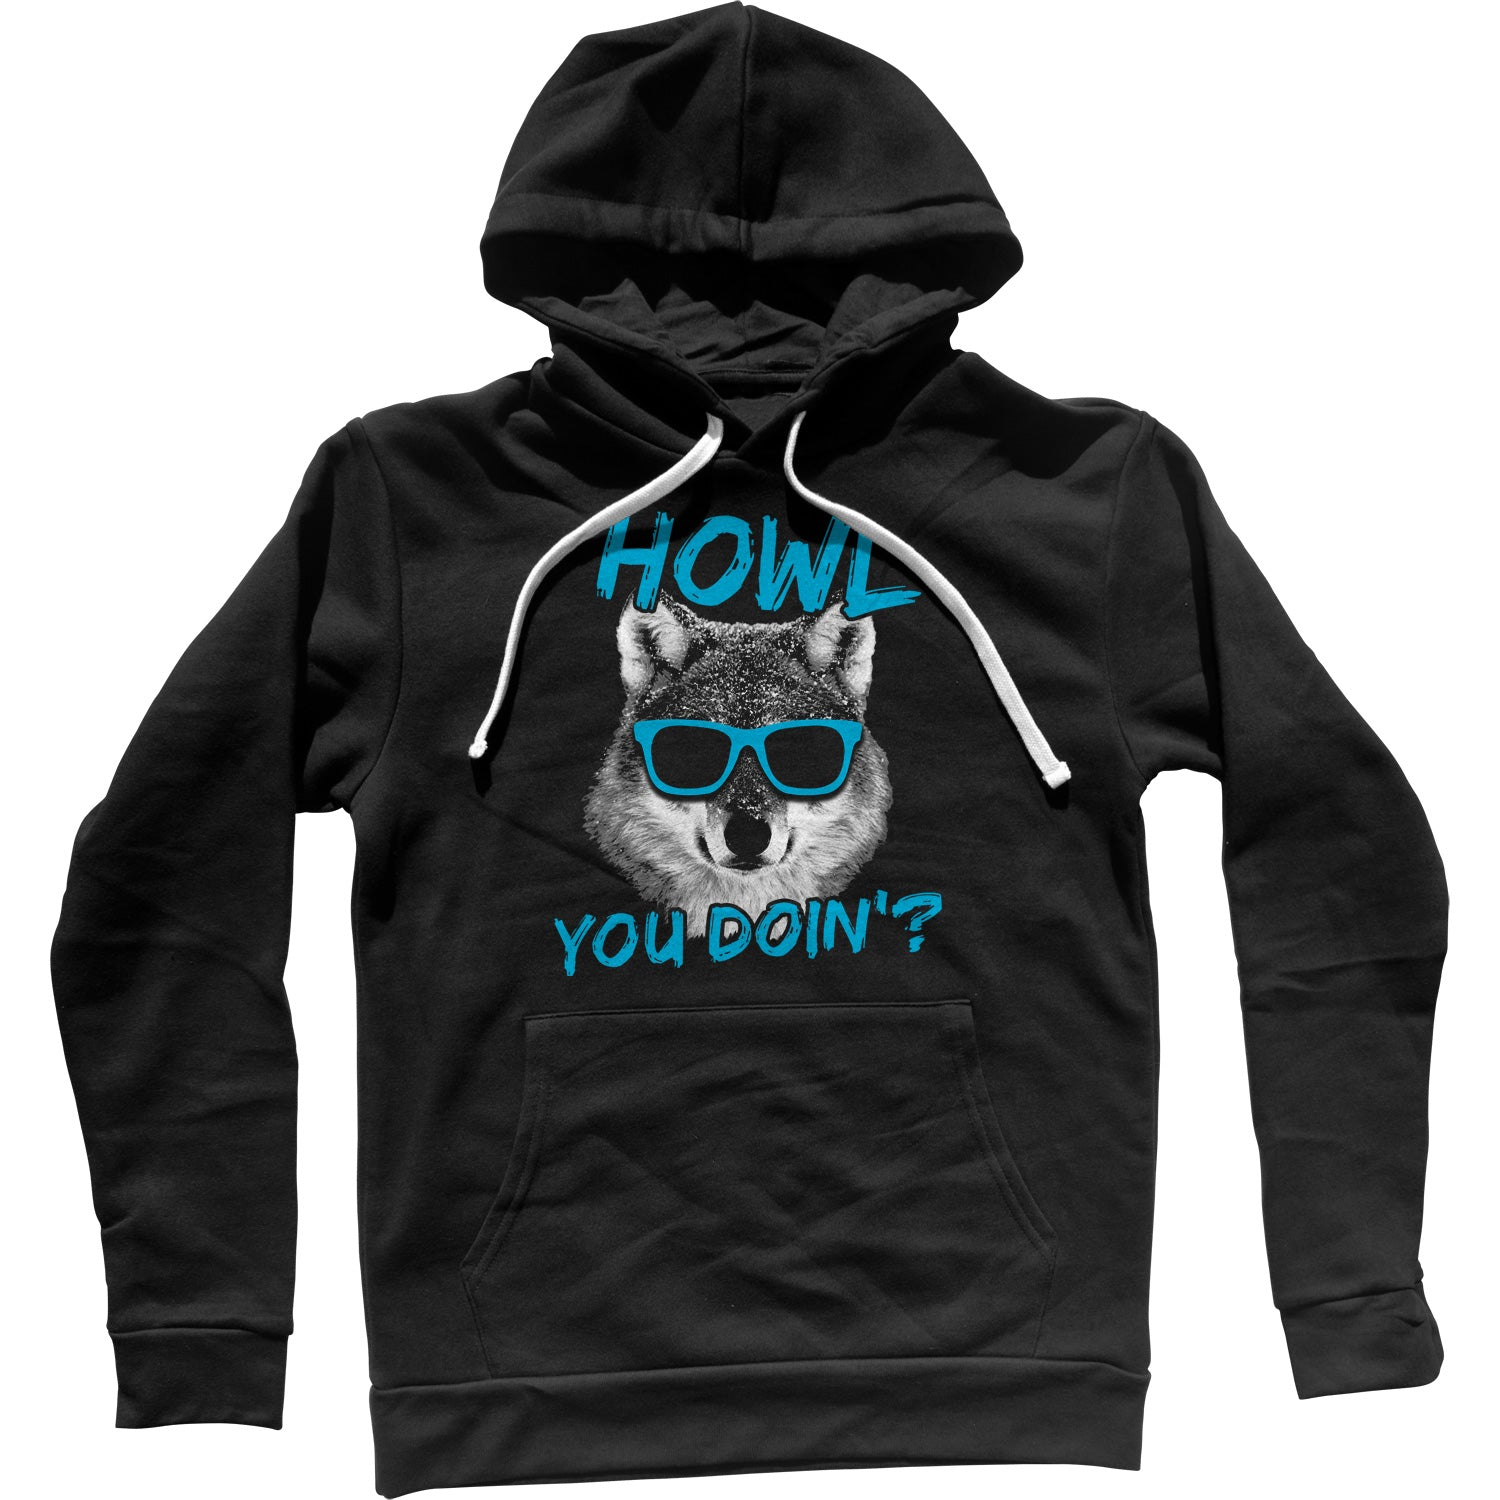 Howl You Doin Funny Wolf Unisex Hoodie